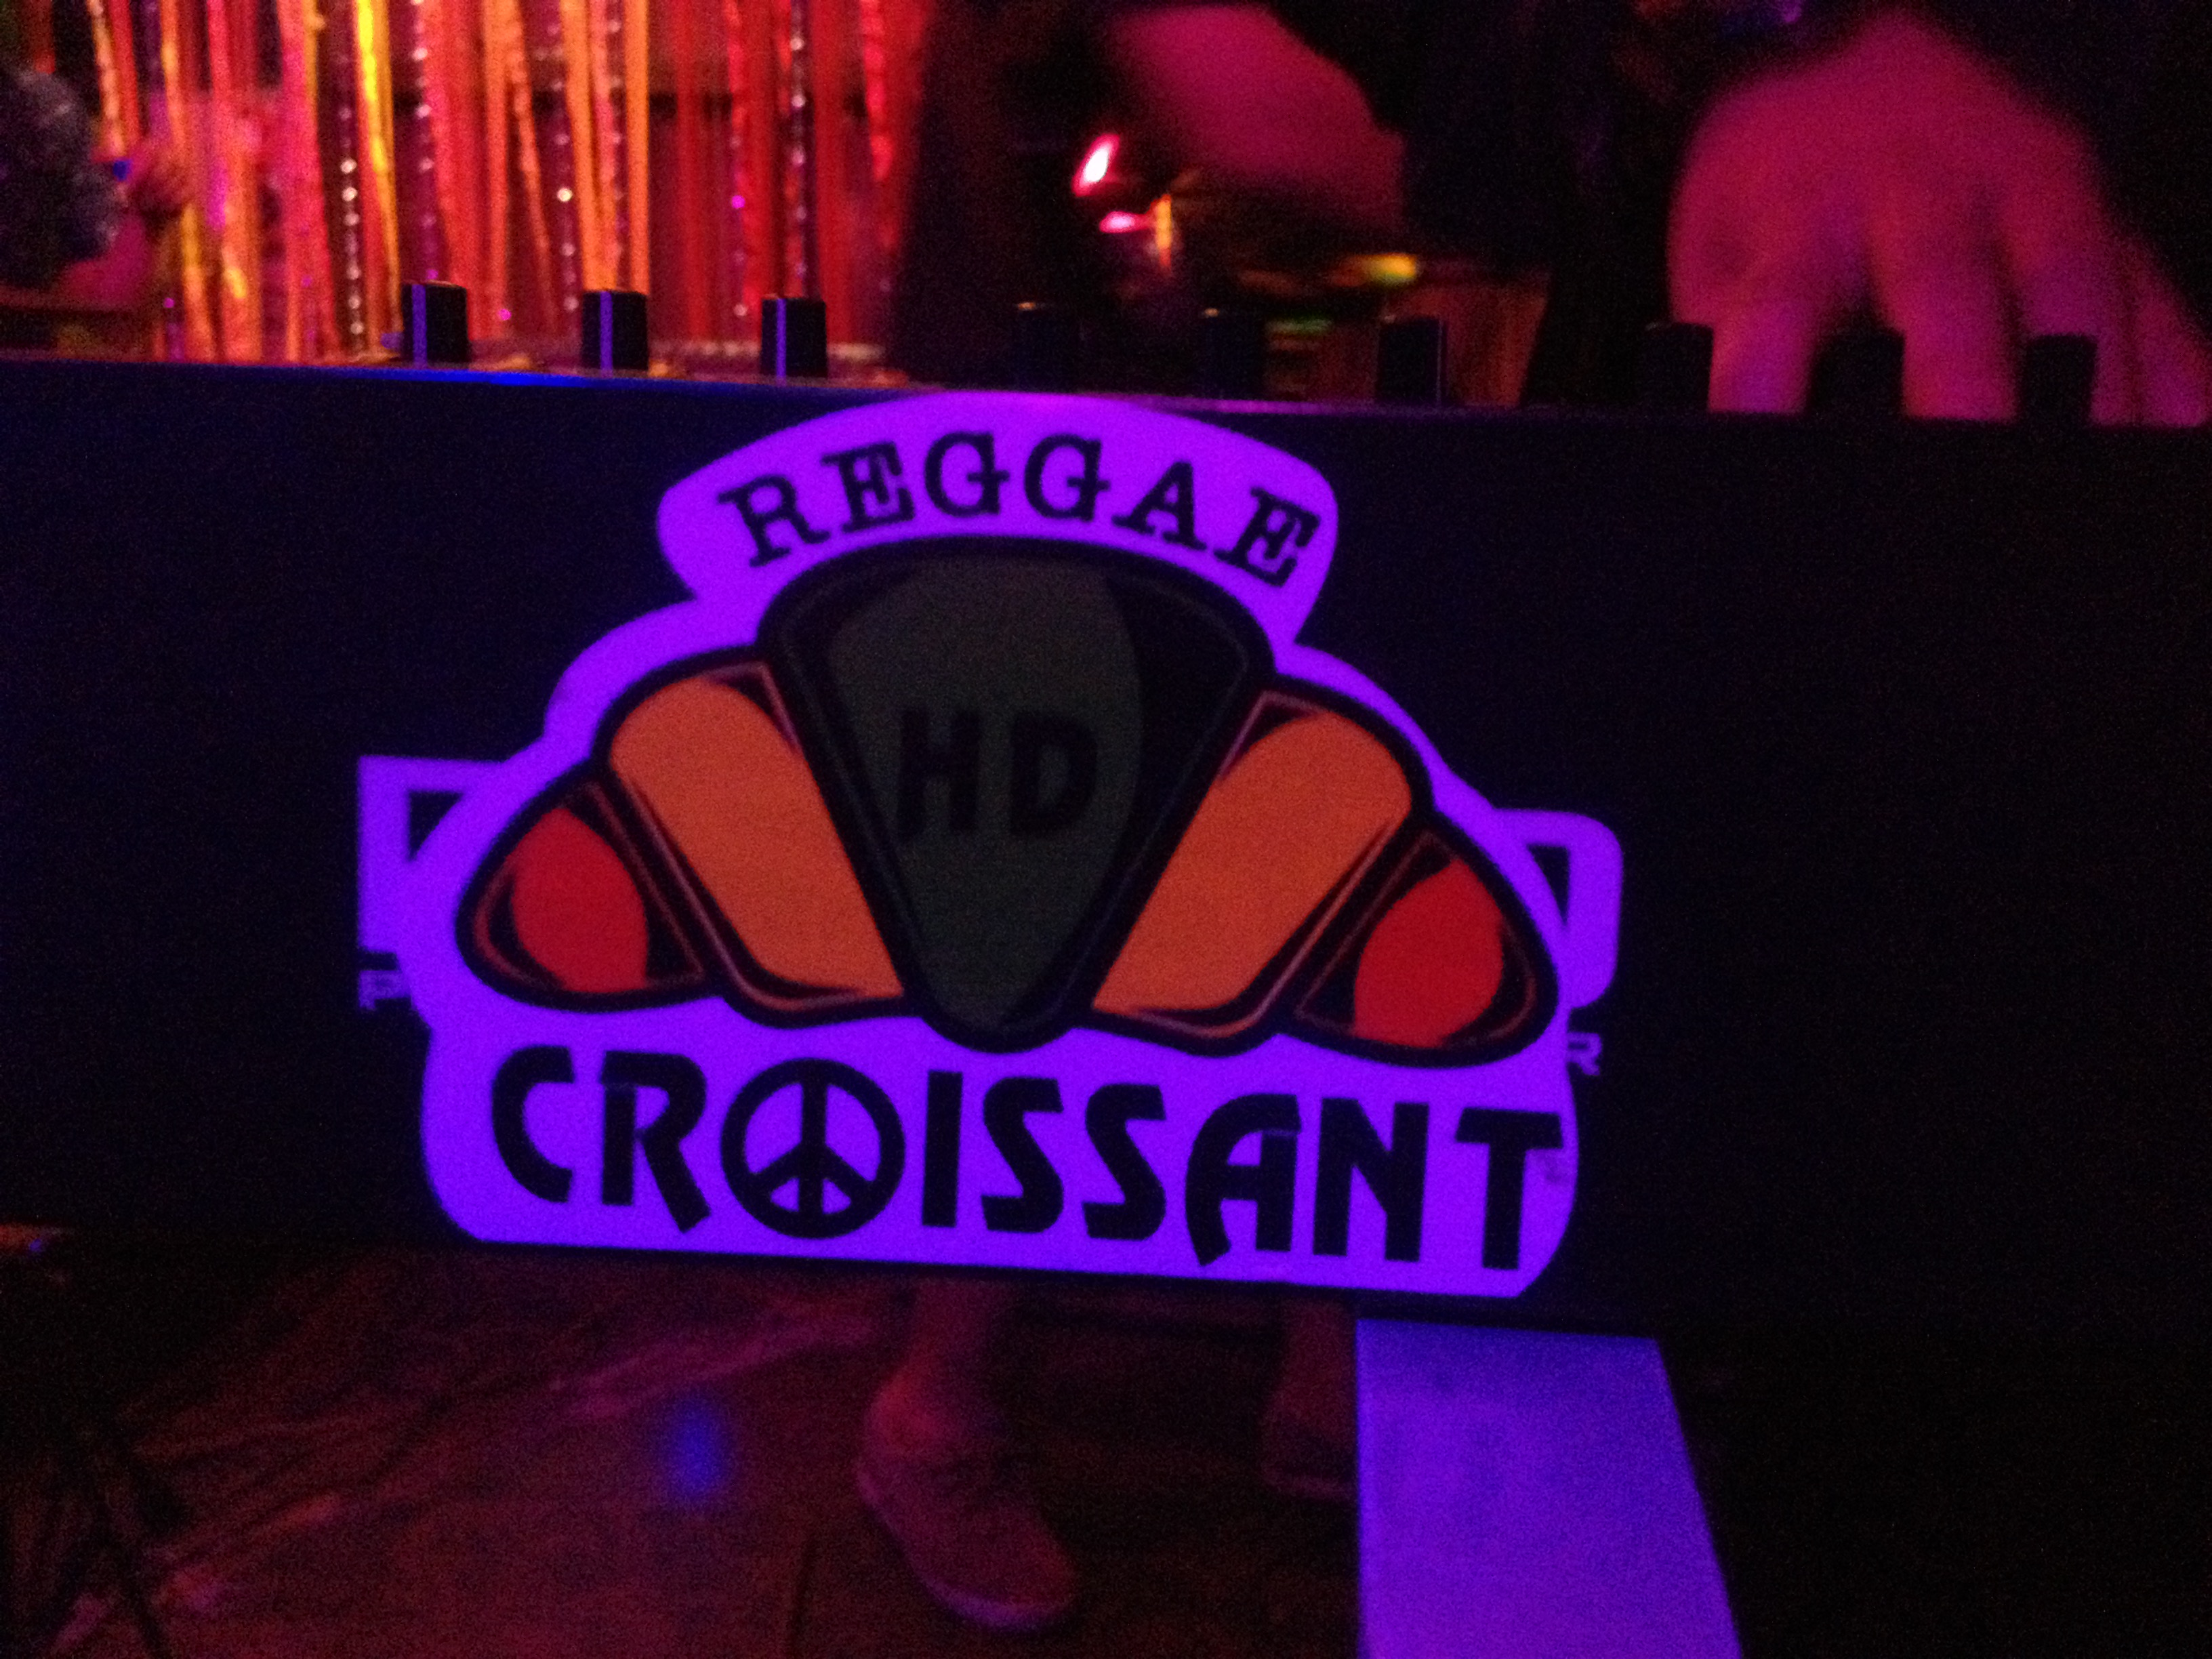 The logo for Reggae Croissant, a reggae cover band in Chiang Mai